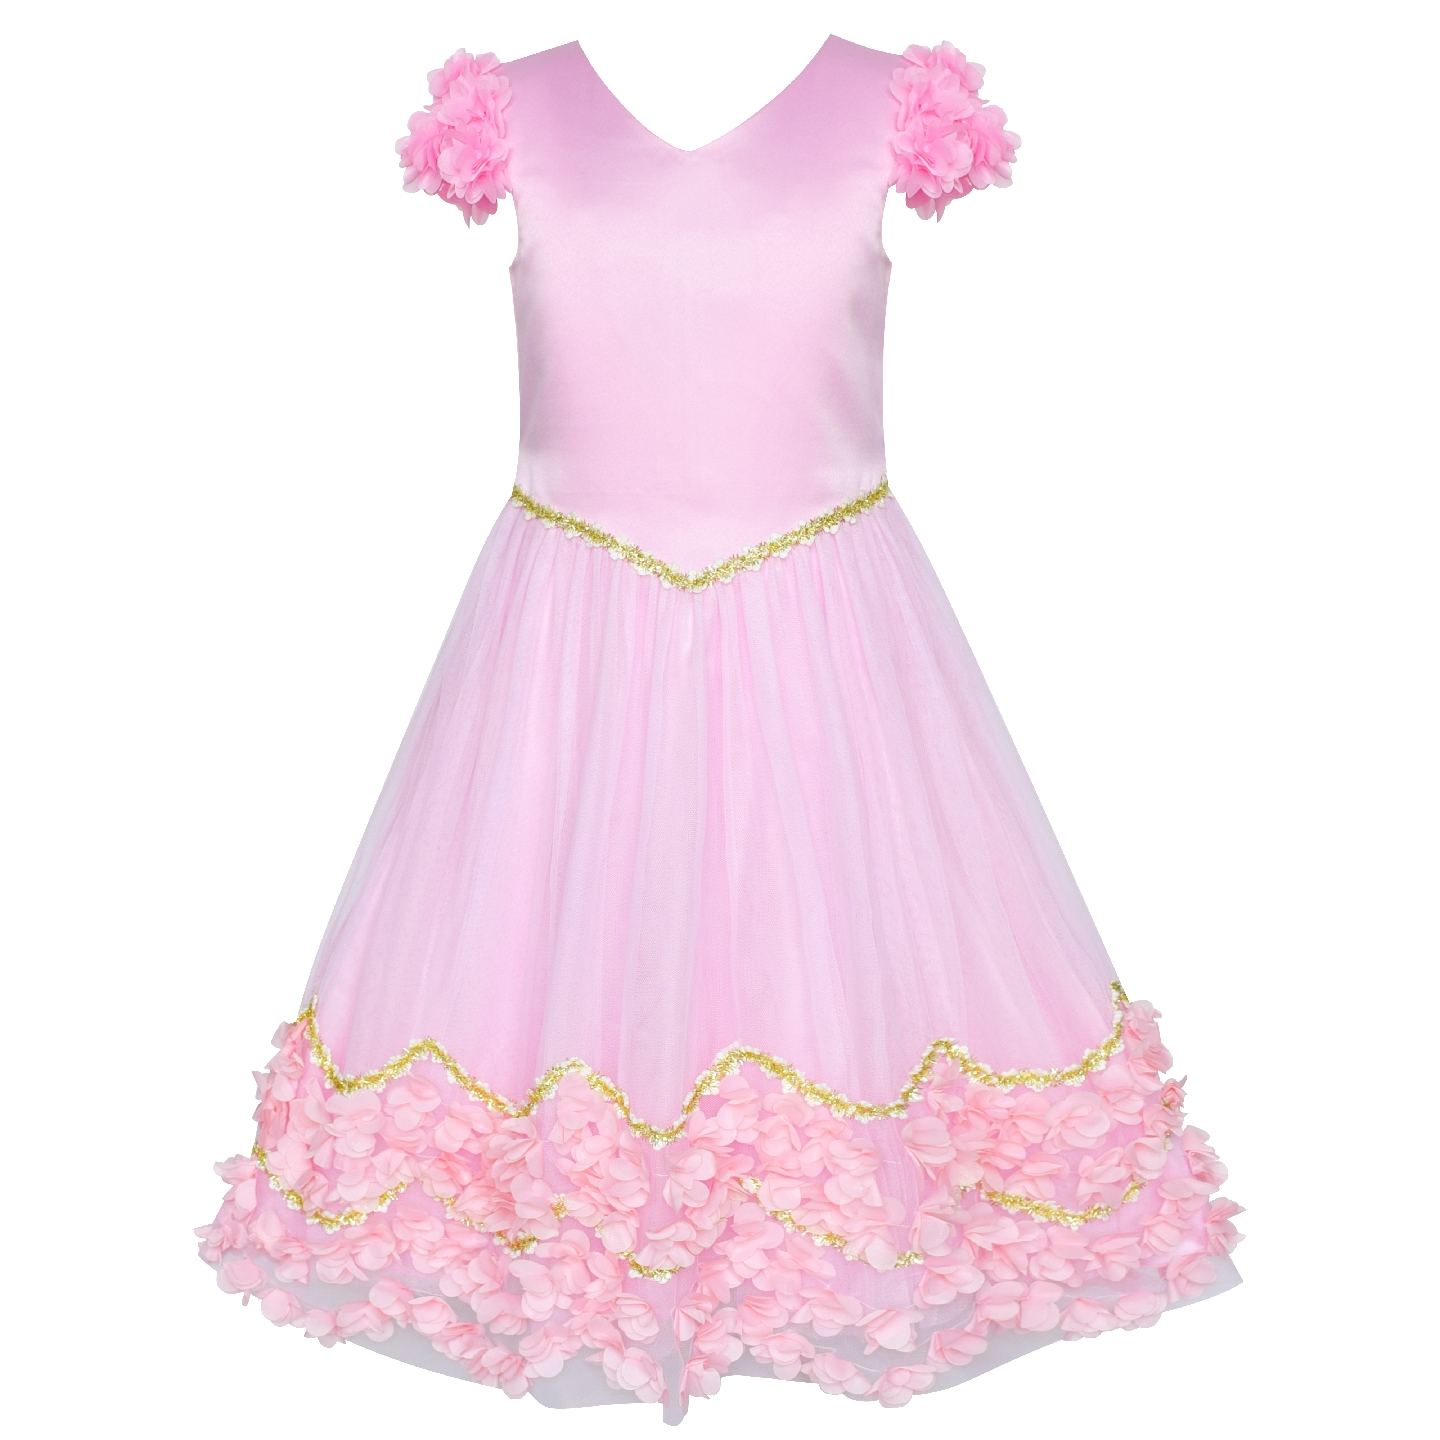 Flower Girl Dress Pink Floral Wedding Bridesmaid Party 2019 Summer Princess Dresses Kids Clothes Pageant Sundress VestidosFlower Girl Dress Pink Floral Wedding Bridesmaid Party 2019 Summer Princess Dresses Kids Clothes Pageant Sundress Vestidos